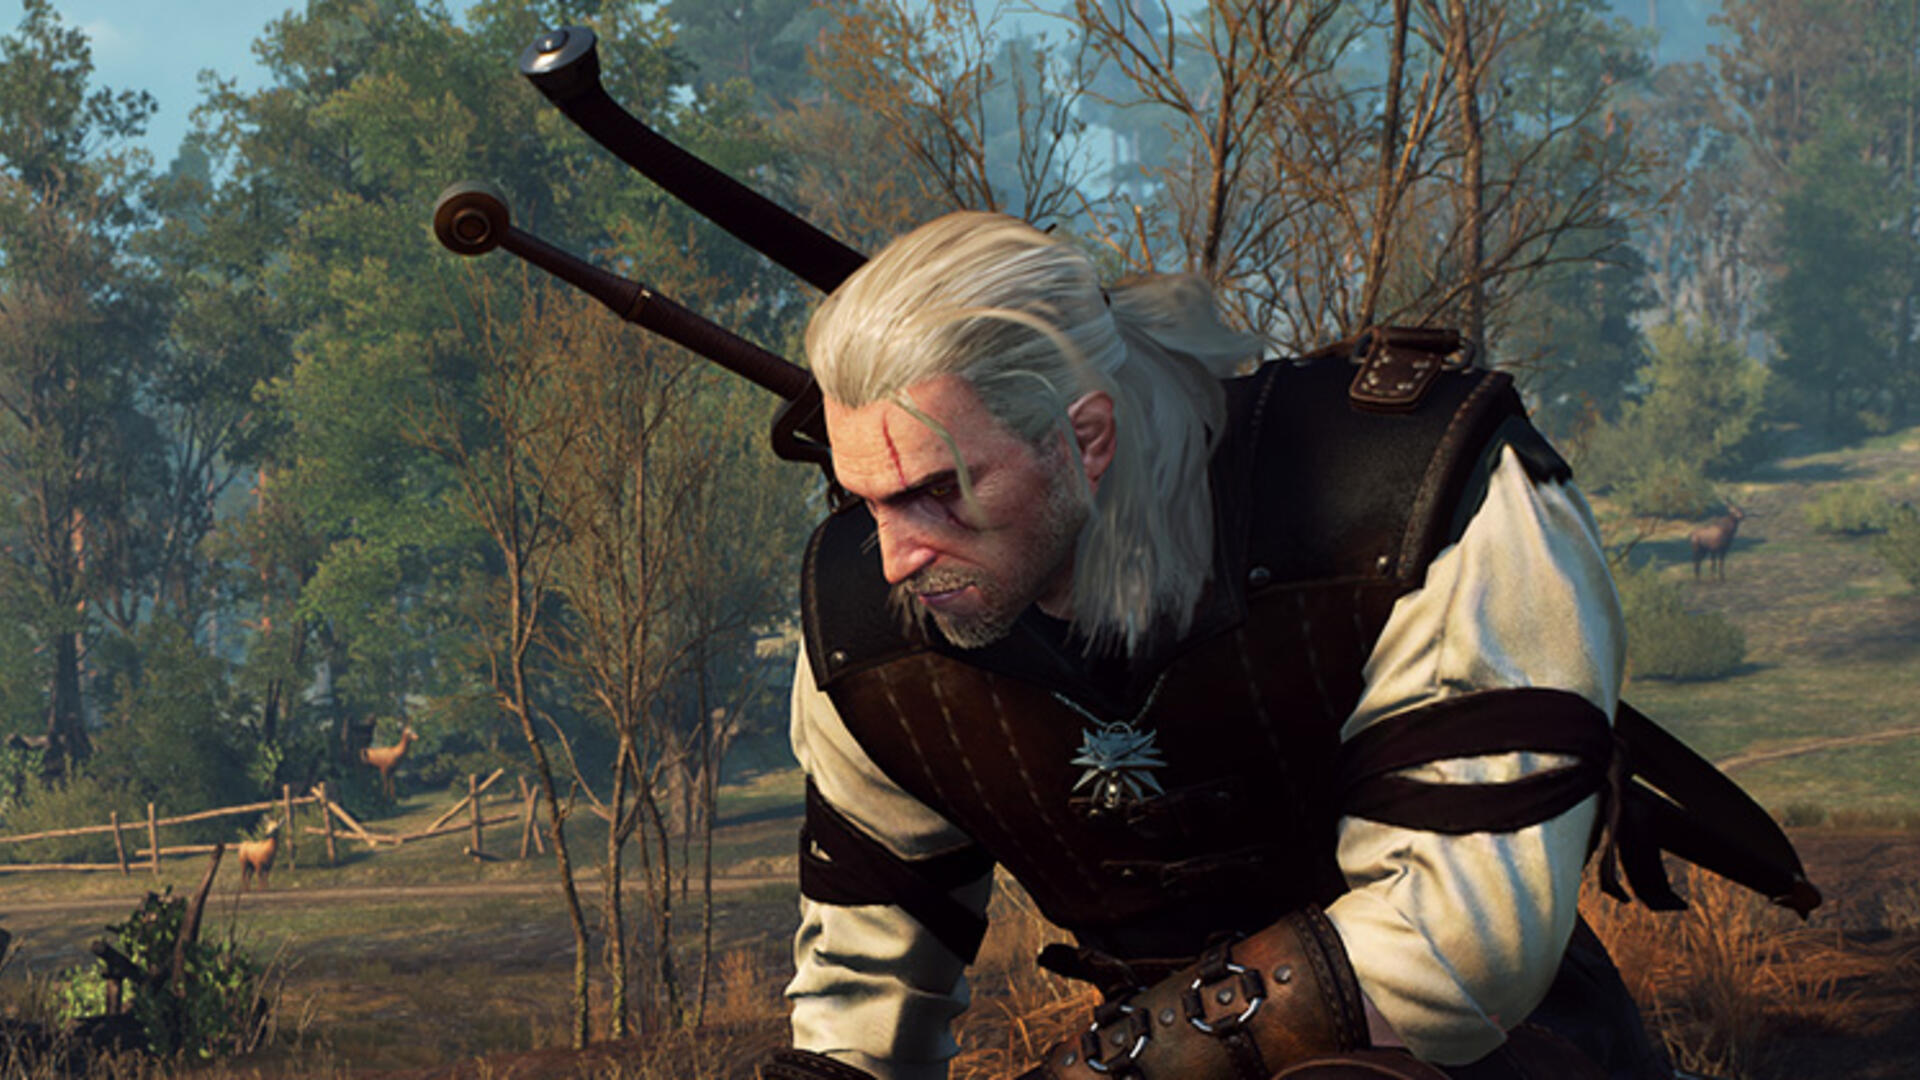 Don't Worry, CD Projekt Red is Working on a Fix for the Buggy Witcher 3 1.6 Patch [Update: It's live]